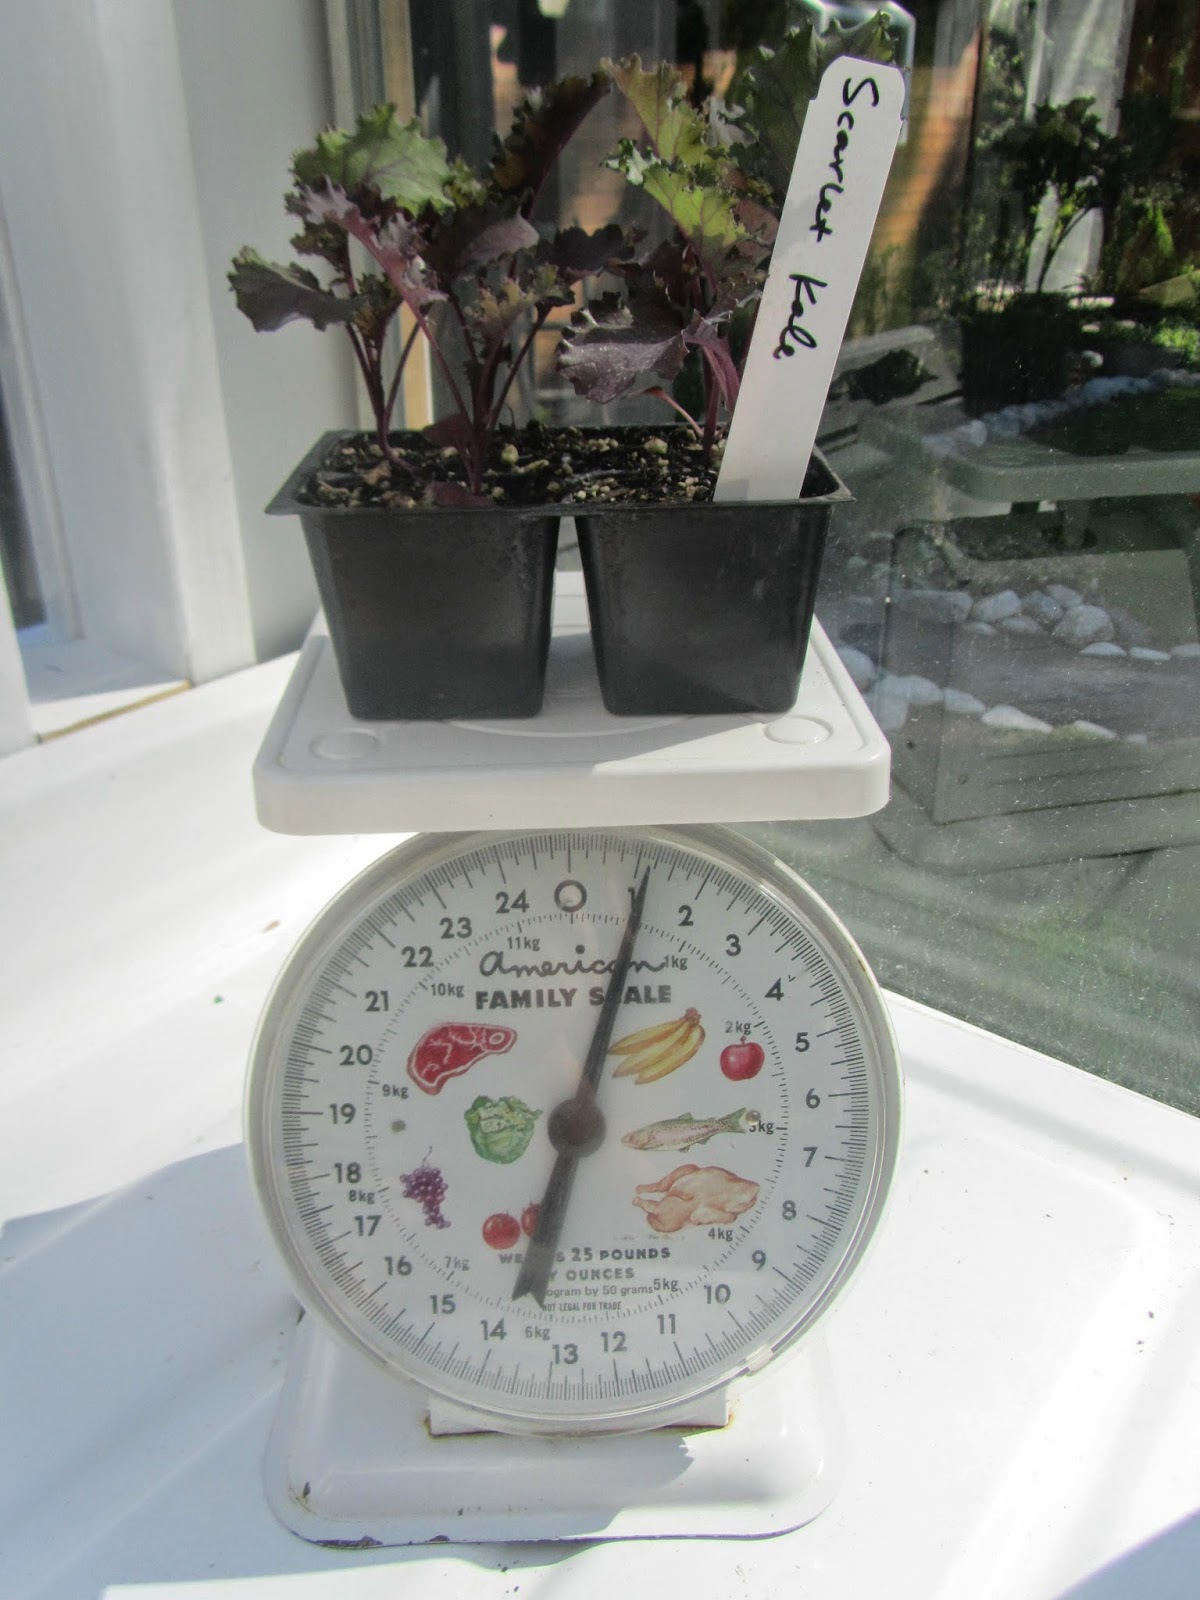 Scarlet Kale starts on an old kitchen scale in the greenhouse